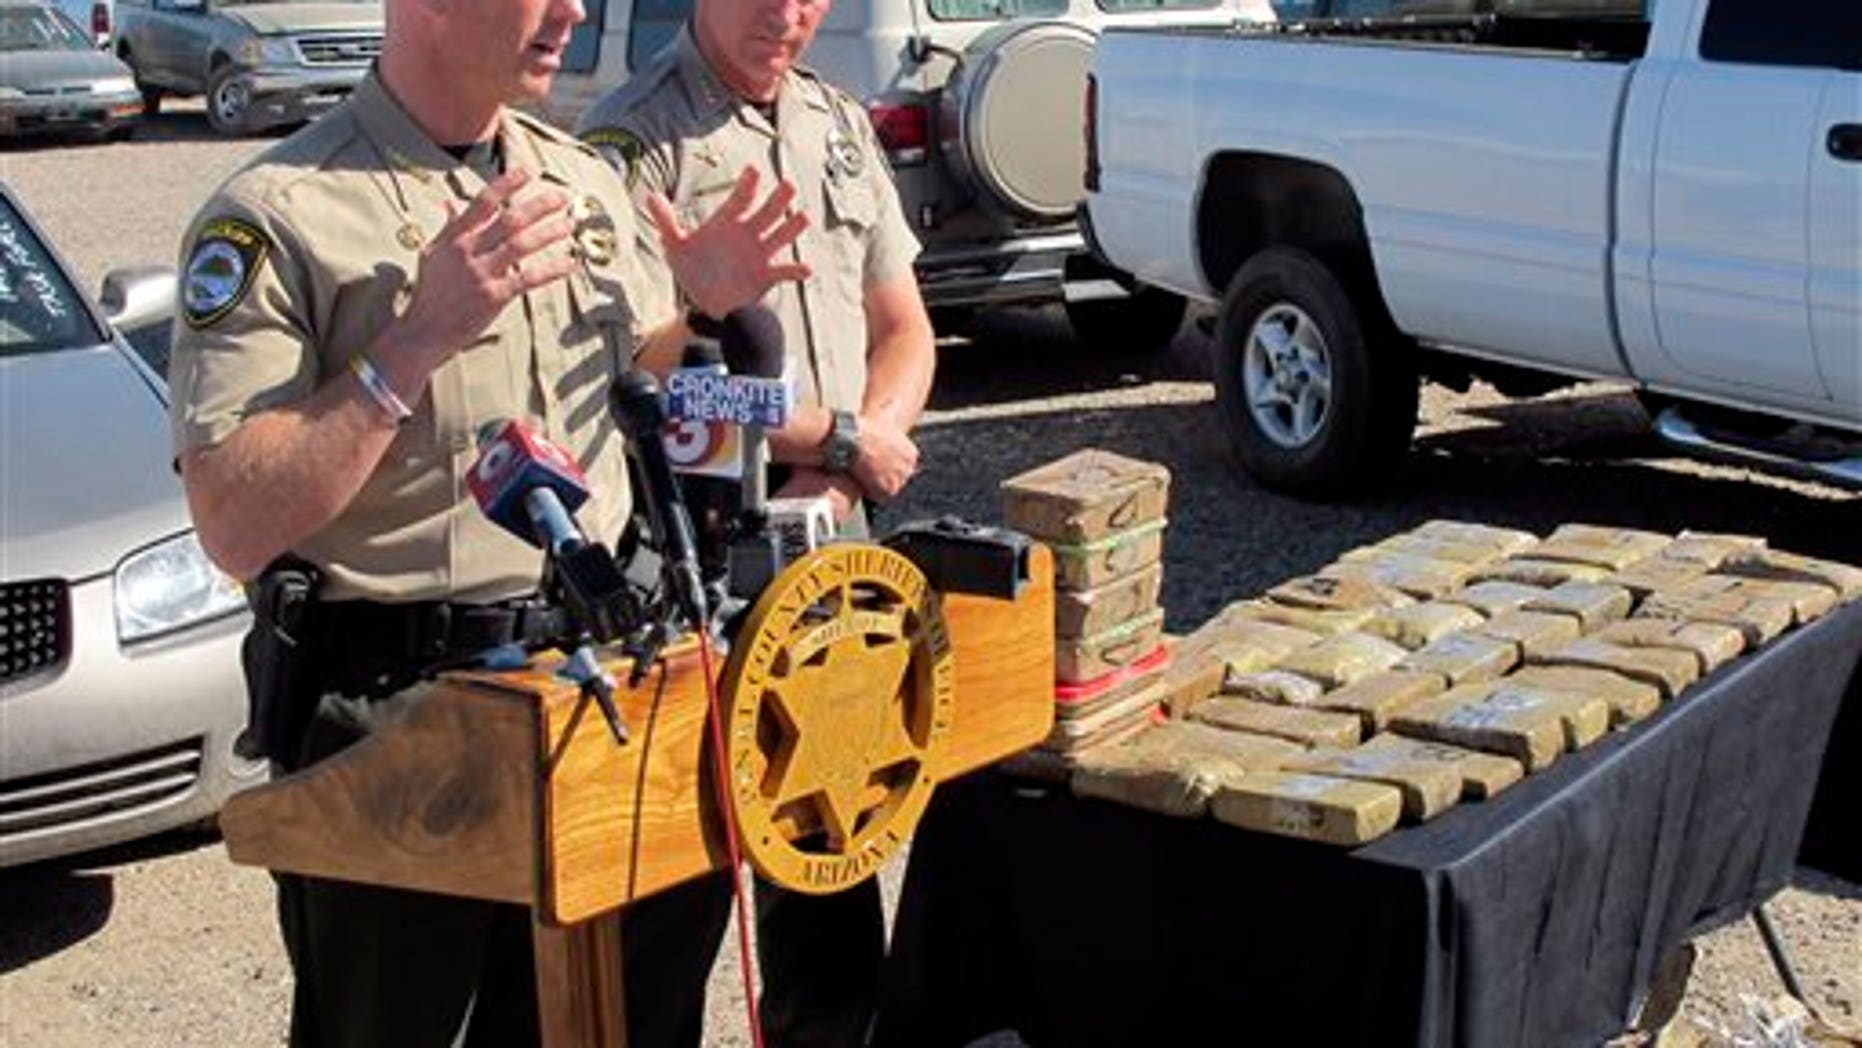 Nov. 1, 2011: Pinal County Sheriff Paul Babeu, left, and Chief Deputy Steve Henry discuss the Arizona arrest of a member of Mexico's Sinaloa drug cartel at a news conference in Florence, Ariz. Babeu says that the man was caught Monday, two weeks after he was deported as part of a larger investigation into the cartel.